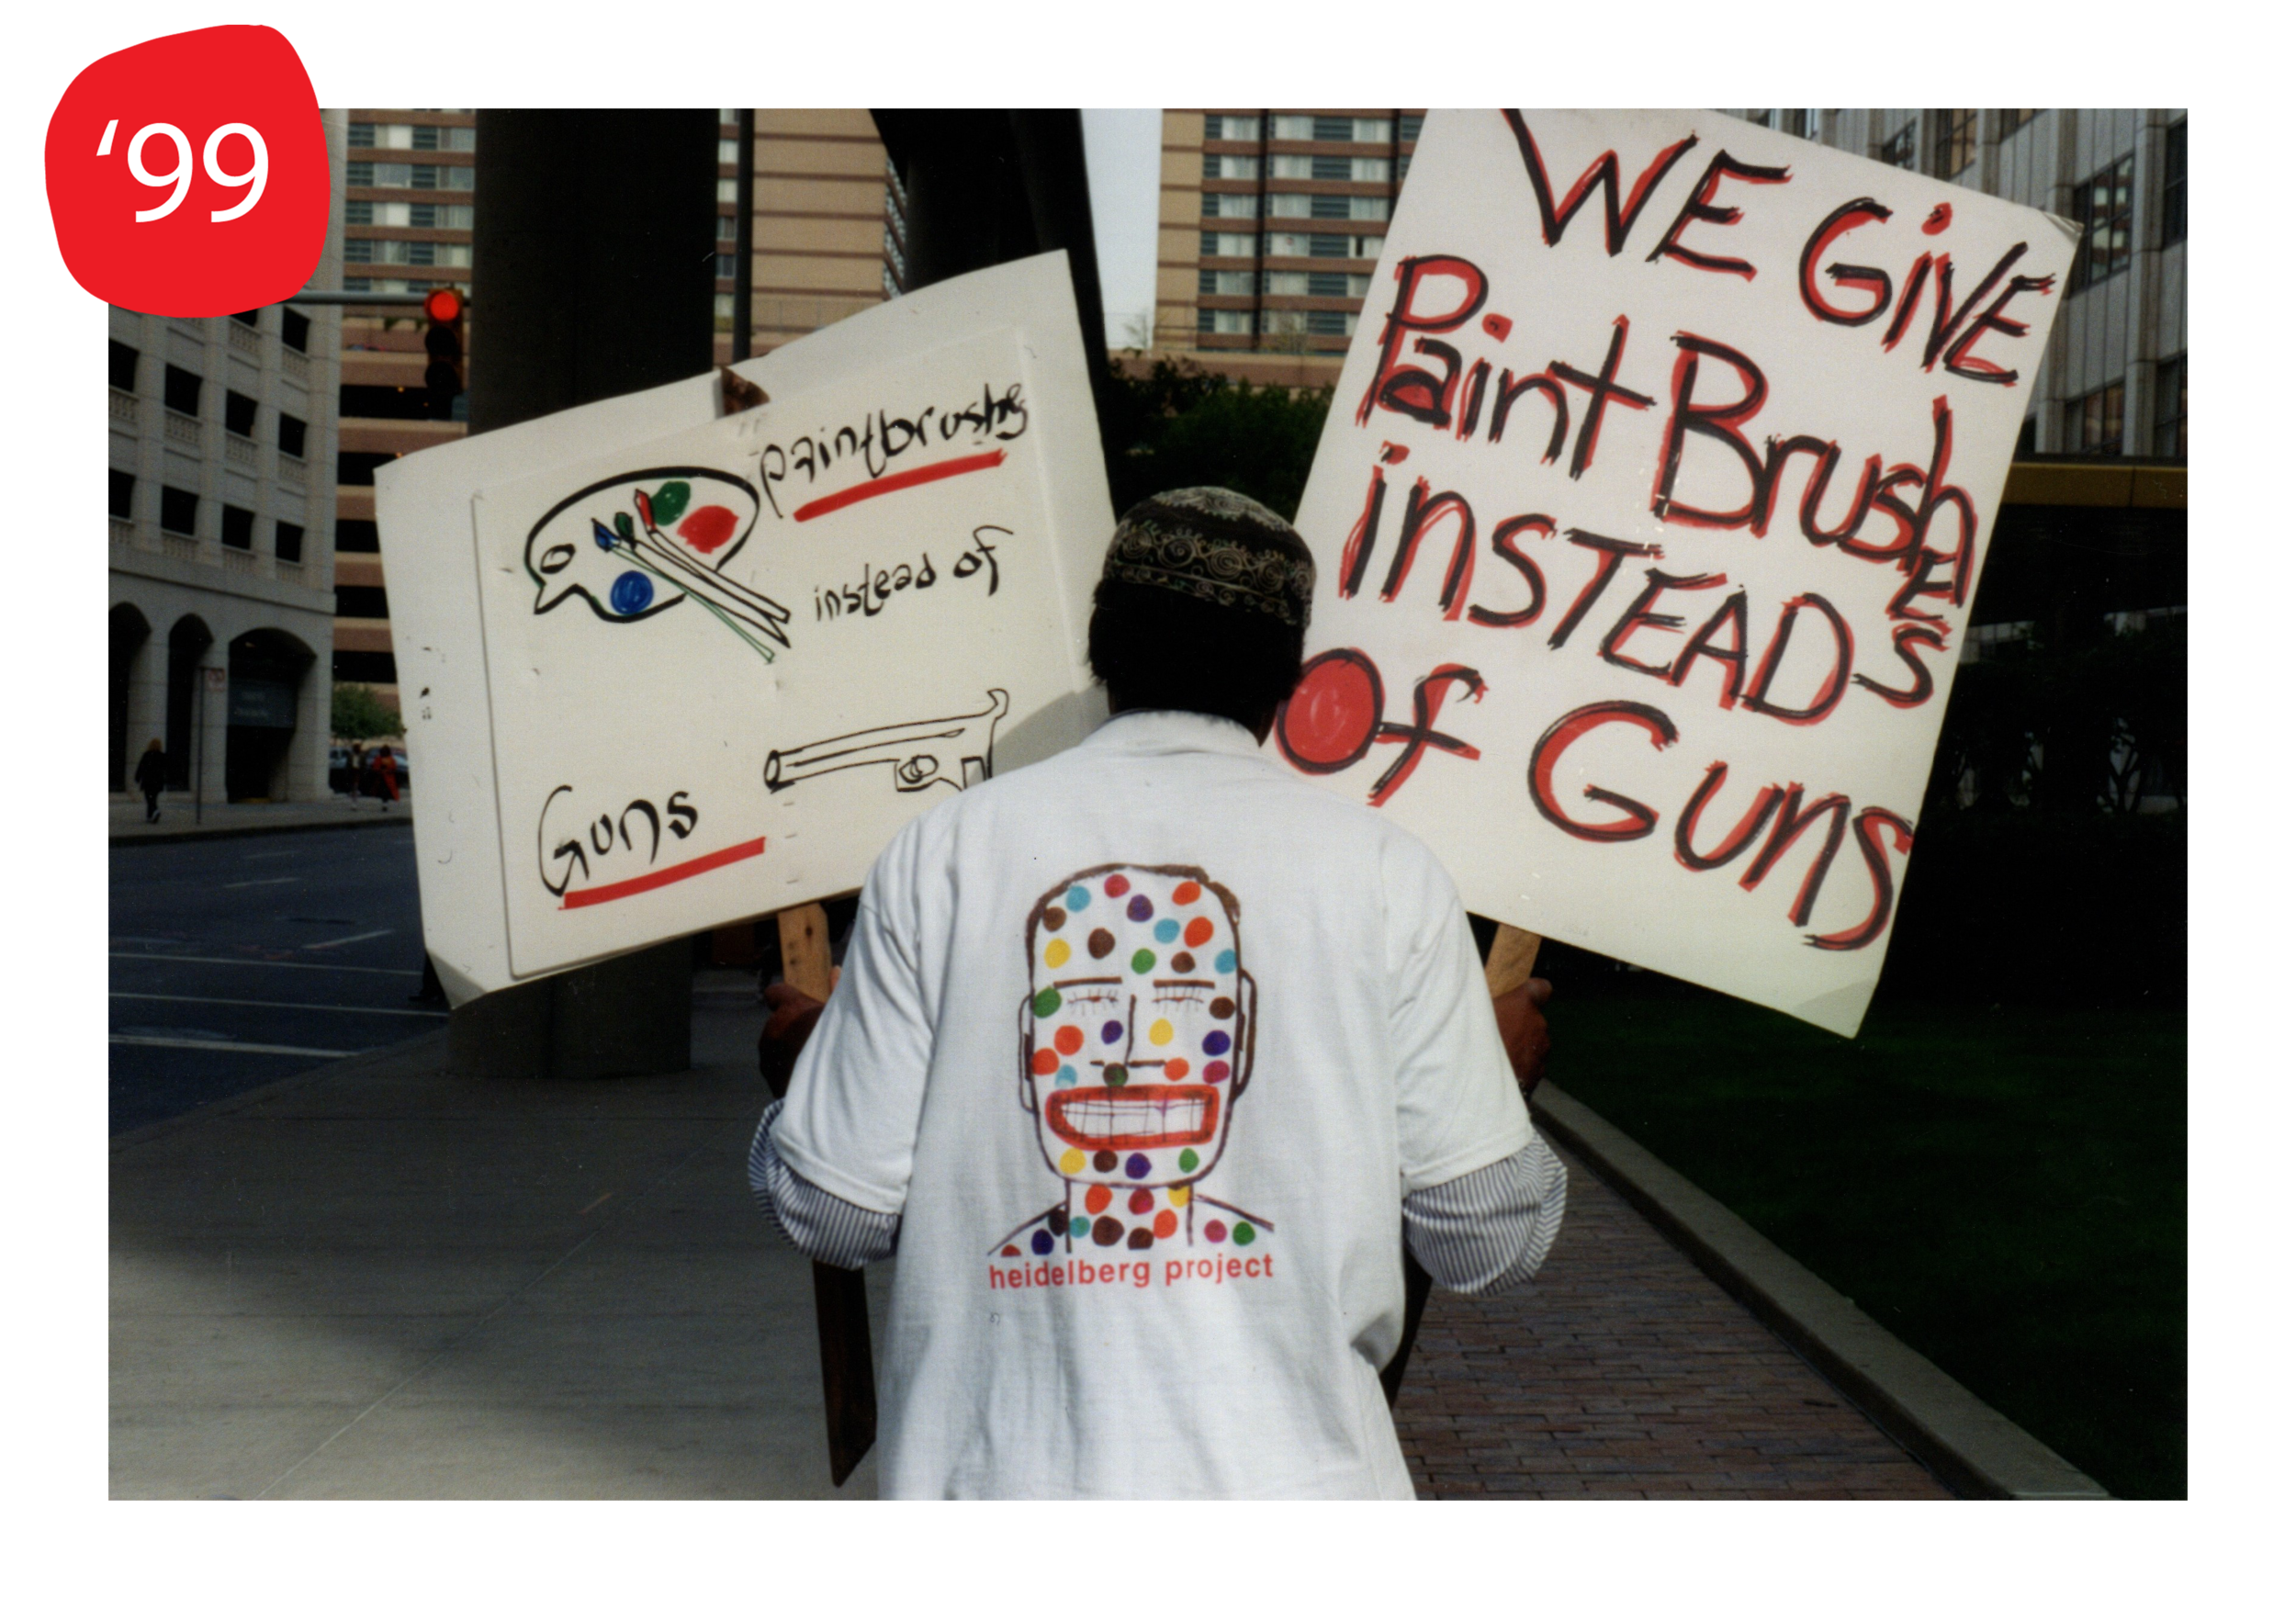 Protest of Heidelberg Project demolitions at Detroit city hall, 1999